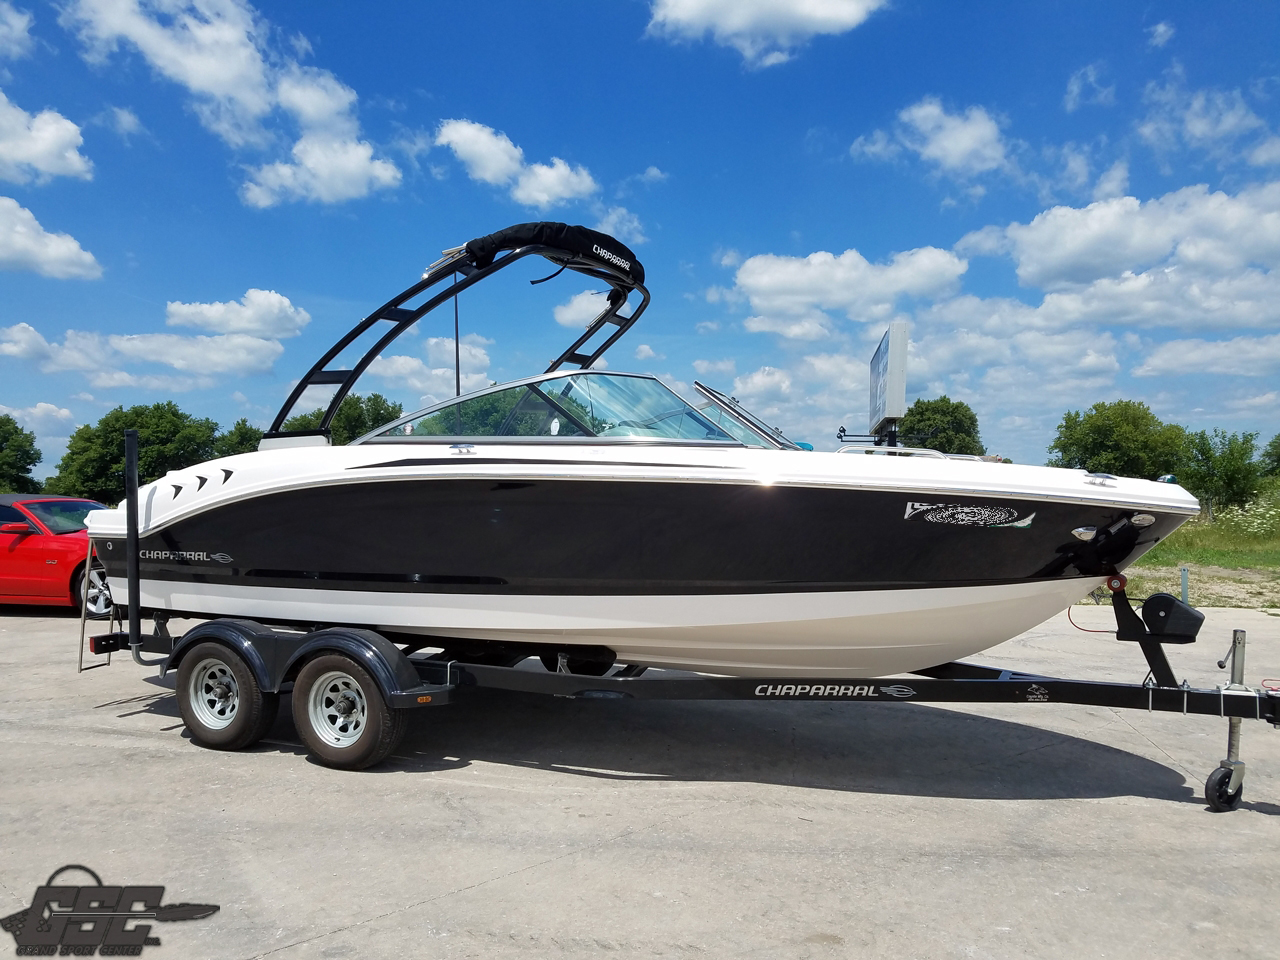 2016 Chaparral 21 H20 Deluxe Bowrider